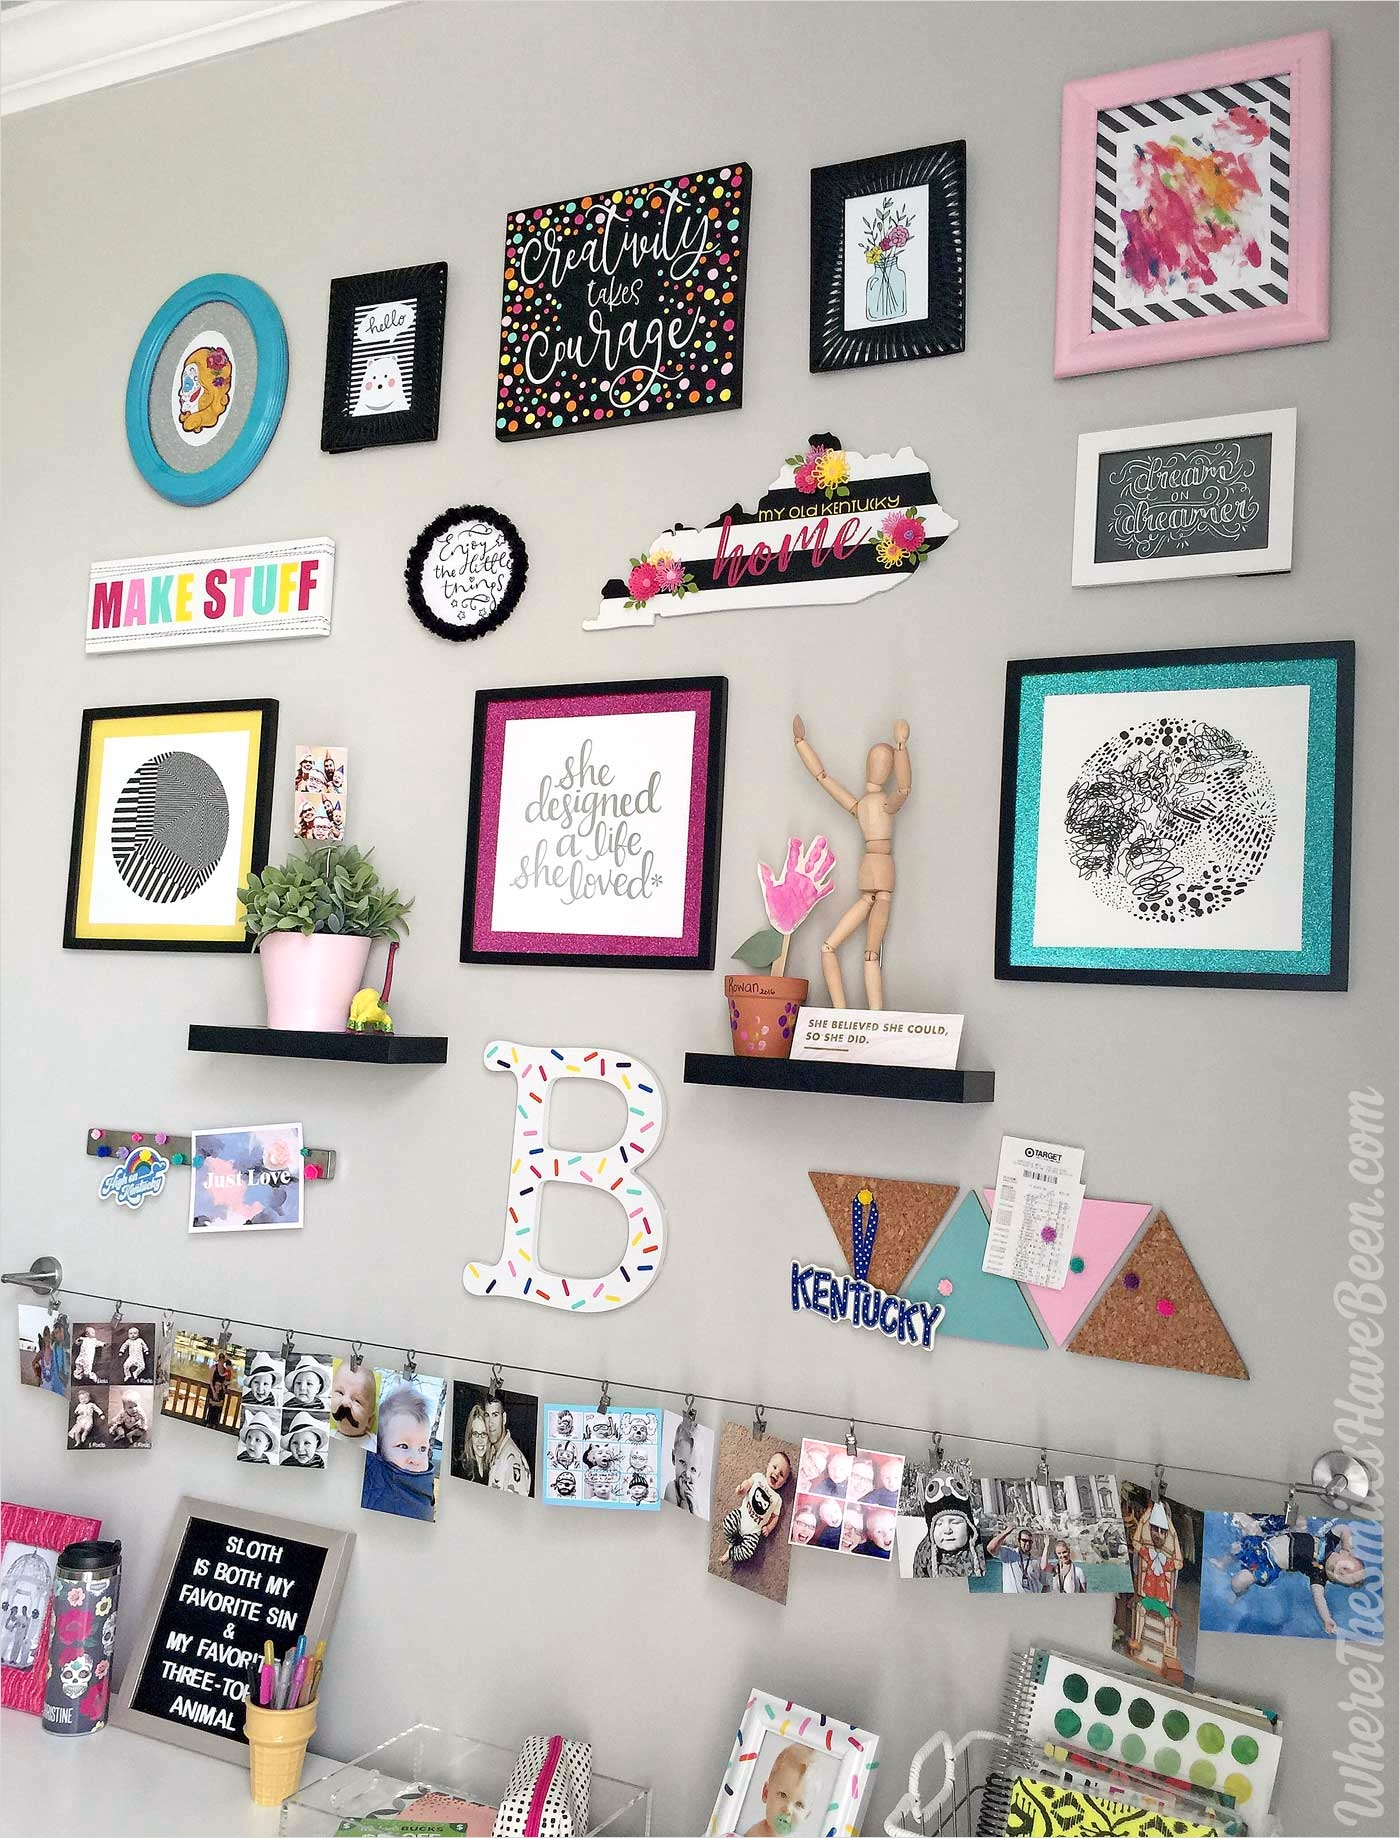 42 Amazing Diy Craft Room Gallery Wall 77 Colorful Craft Room Gallery Wall $100 Erin Condren Giveaway 6